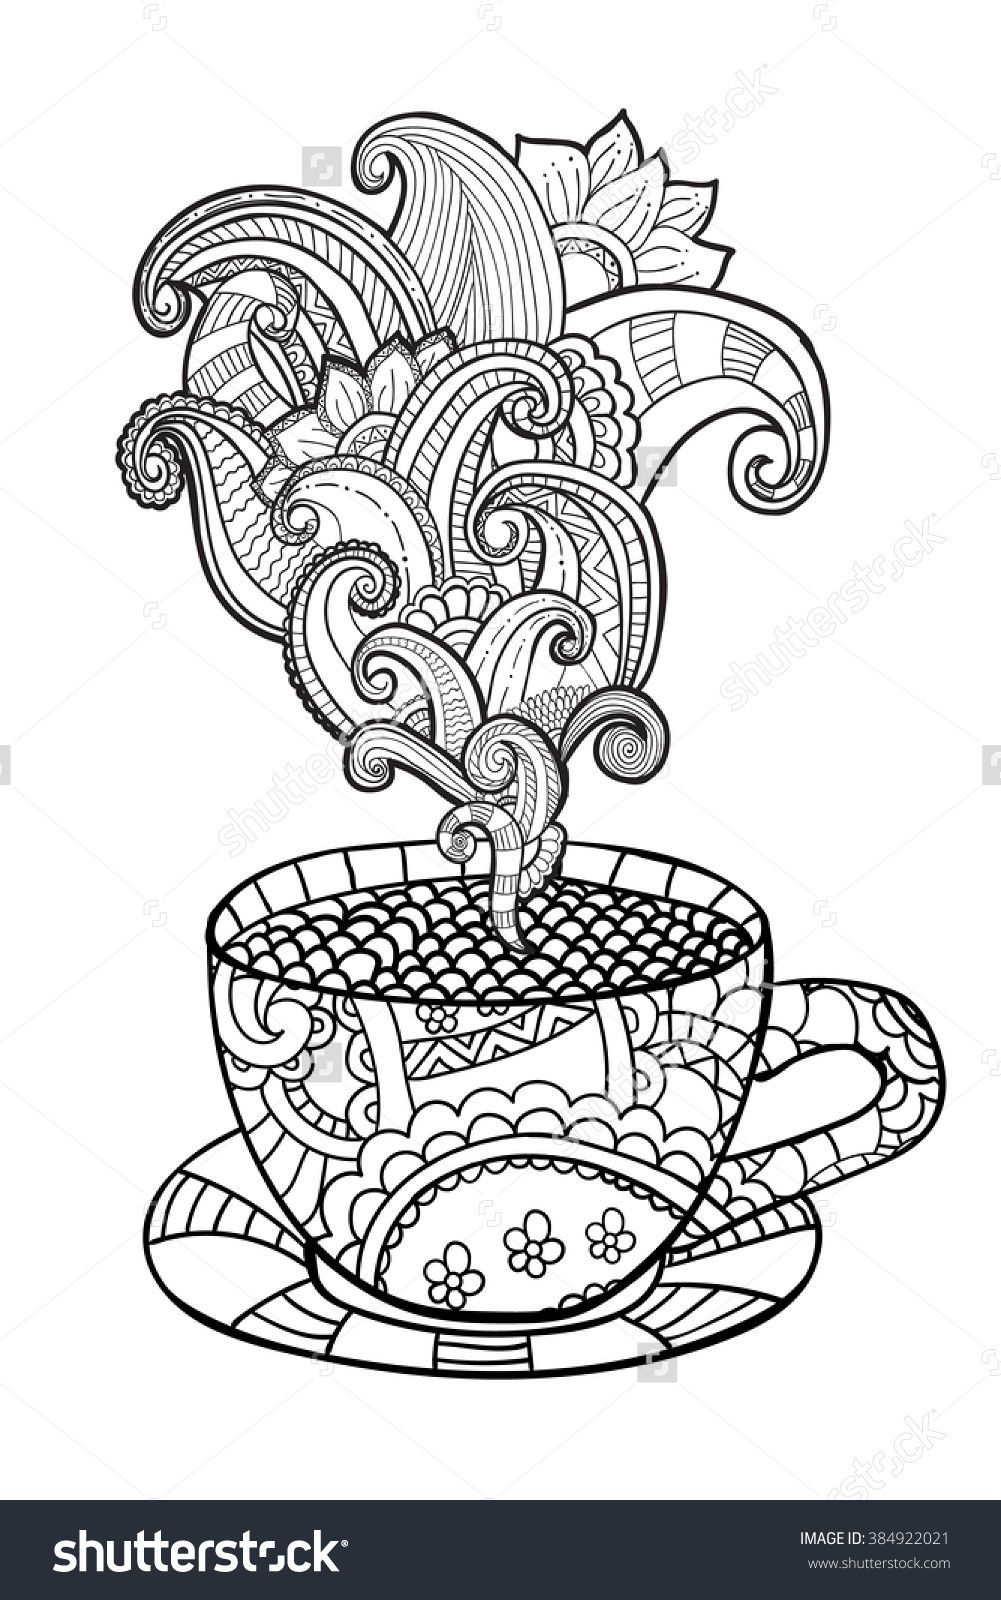 Coffee Or Tea Cup Zentangle Style Coloring Page 384922021